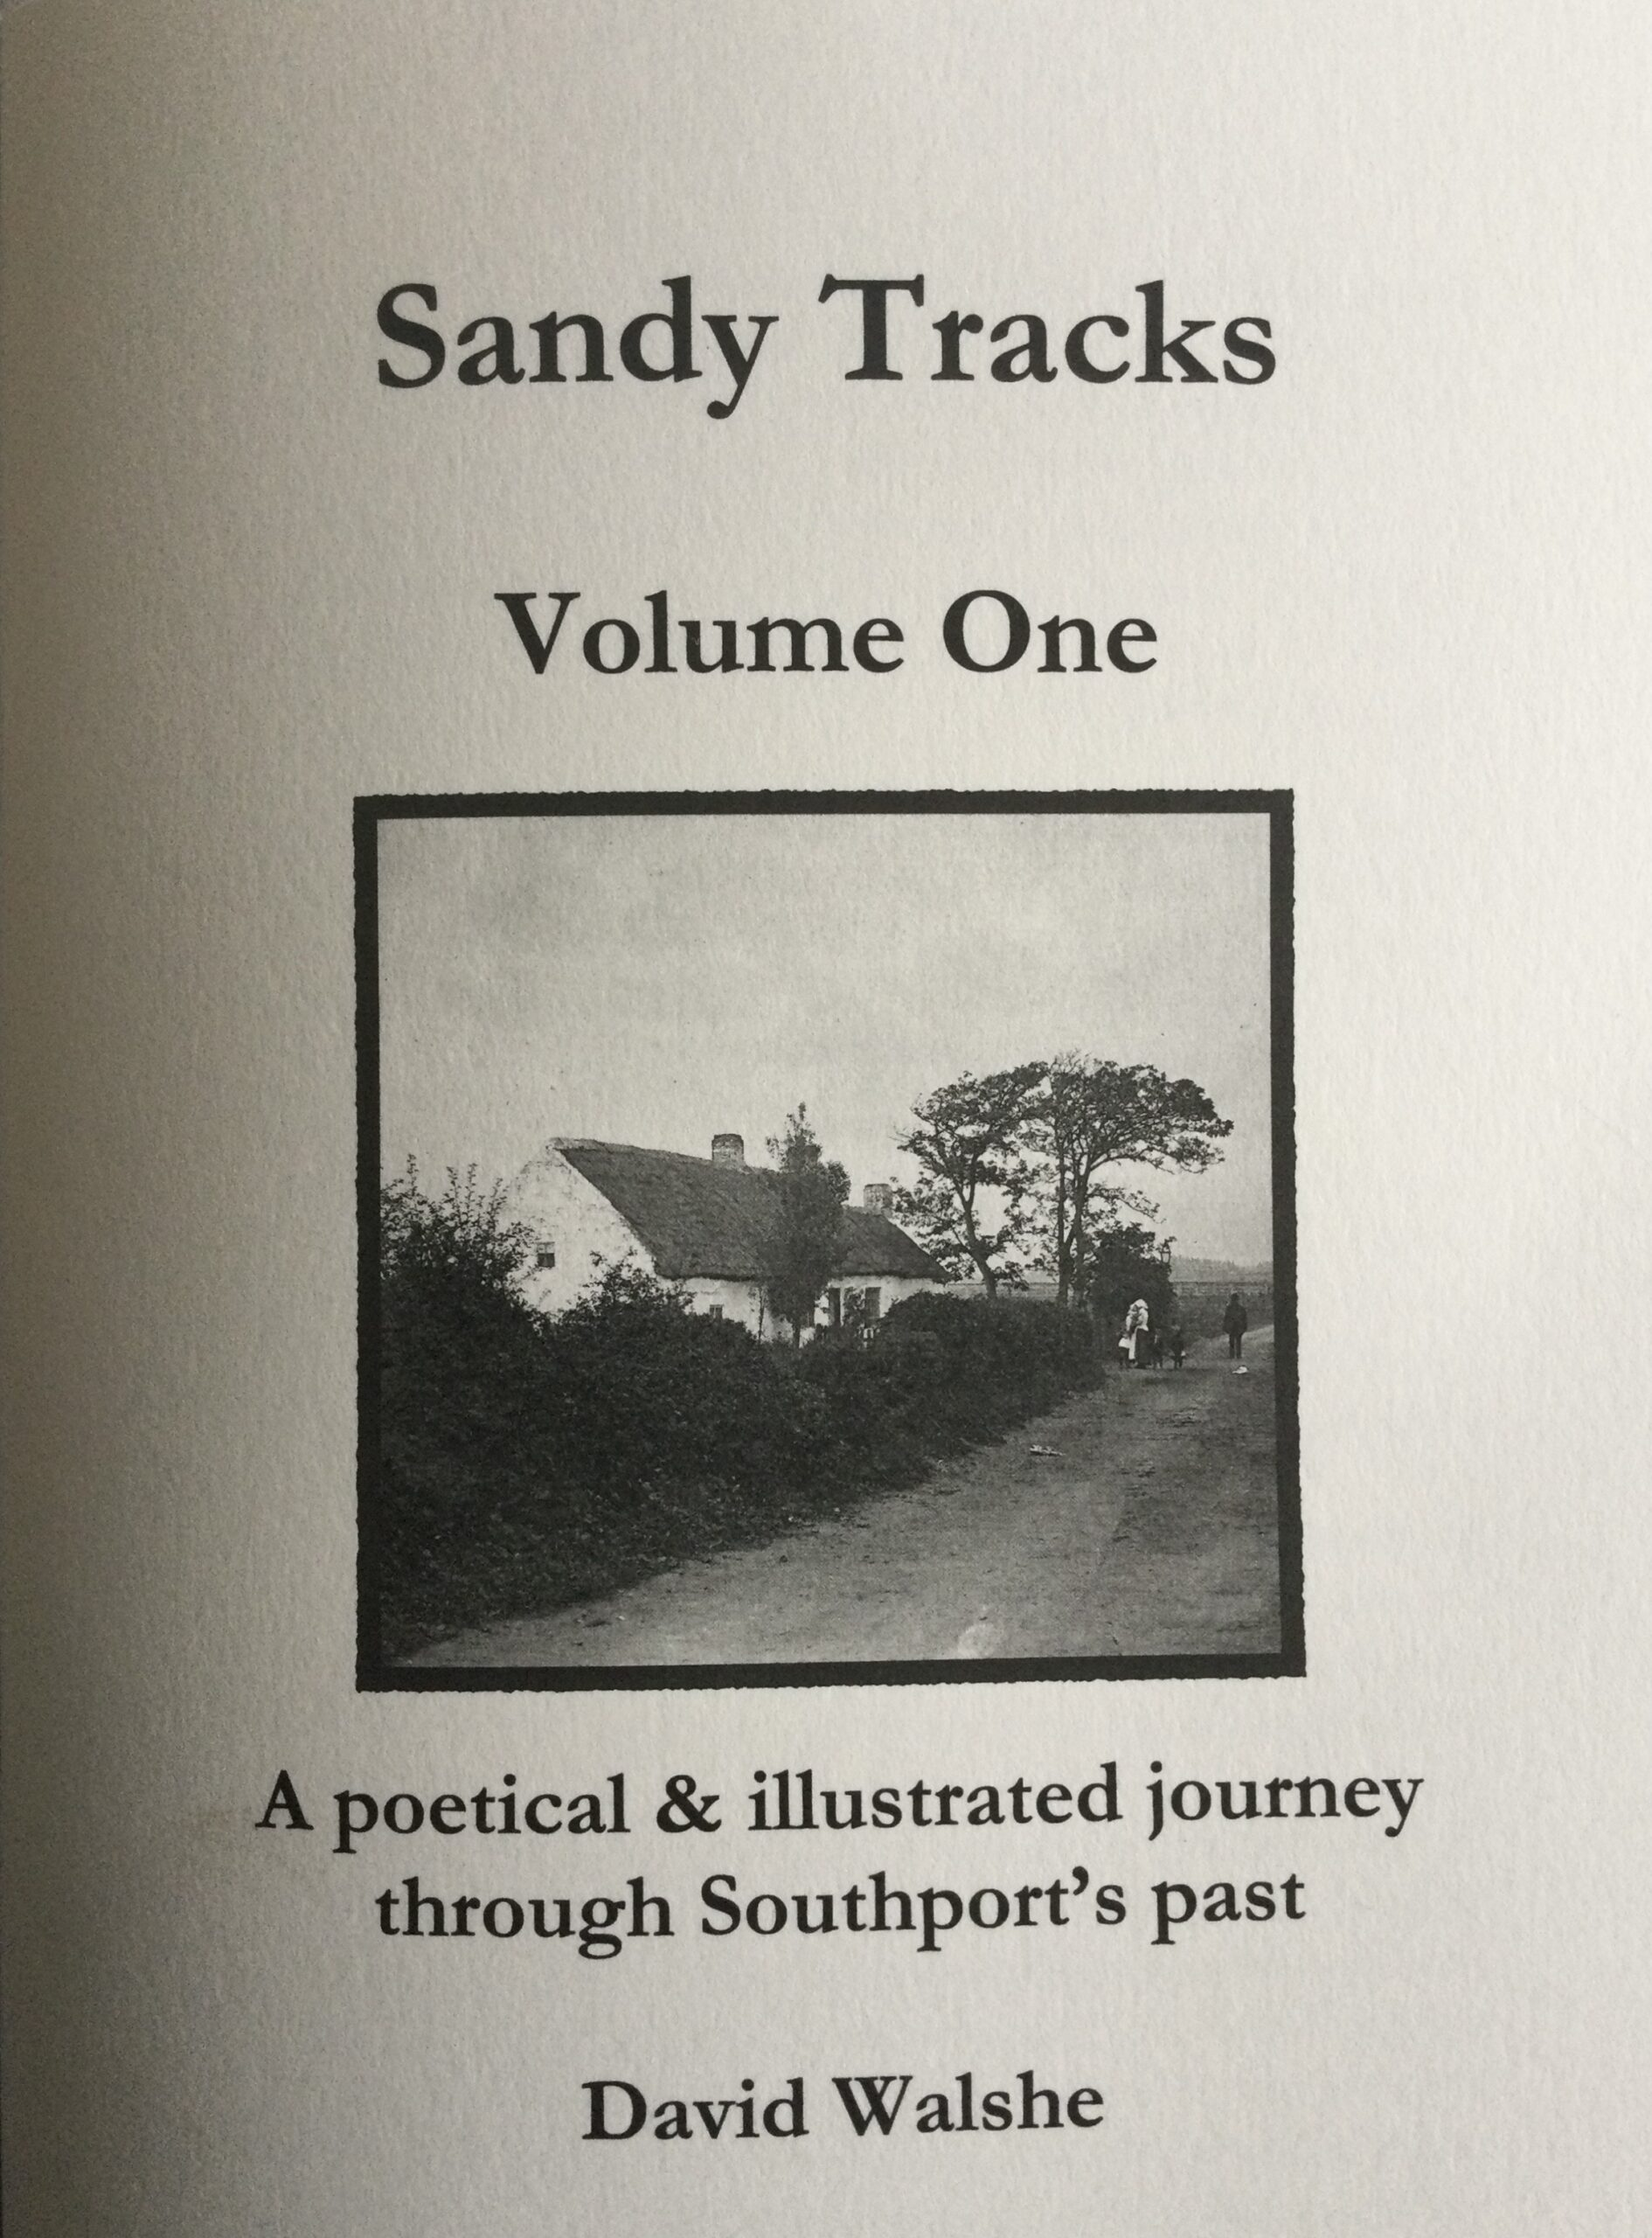 Sandy Tracks by David Walshe is a unique collection of local history themed poems and paired illustrations. Image copyright David Walshe